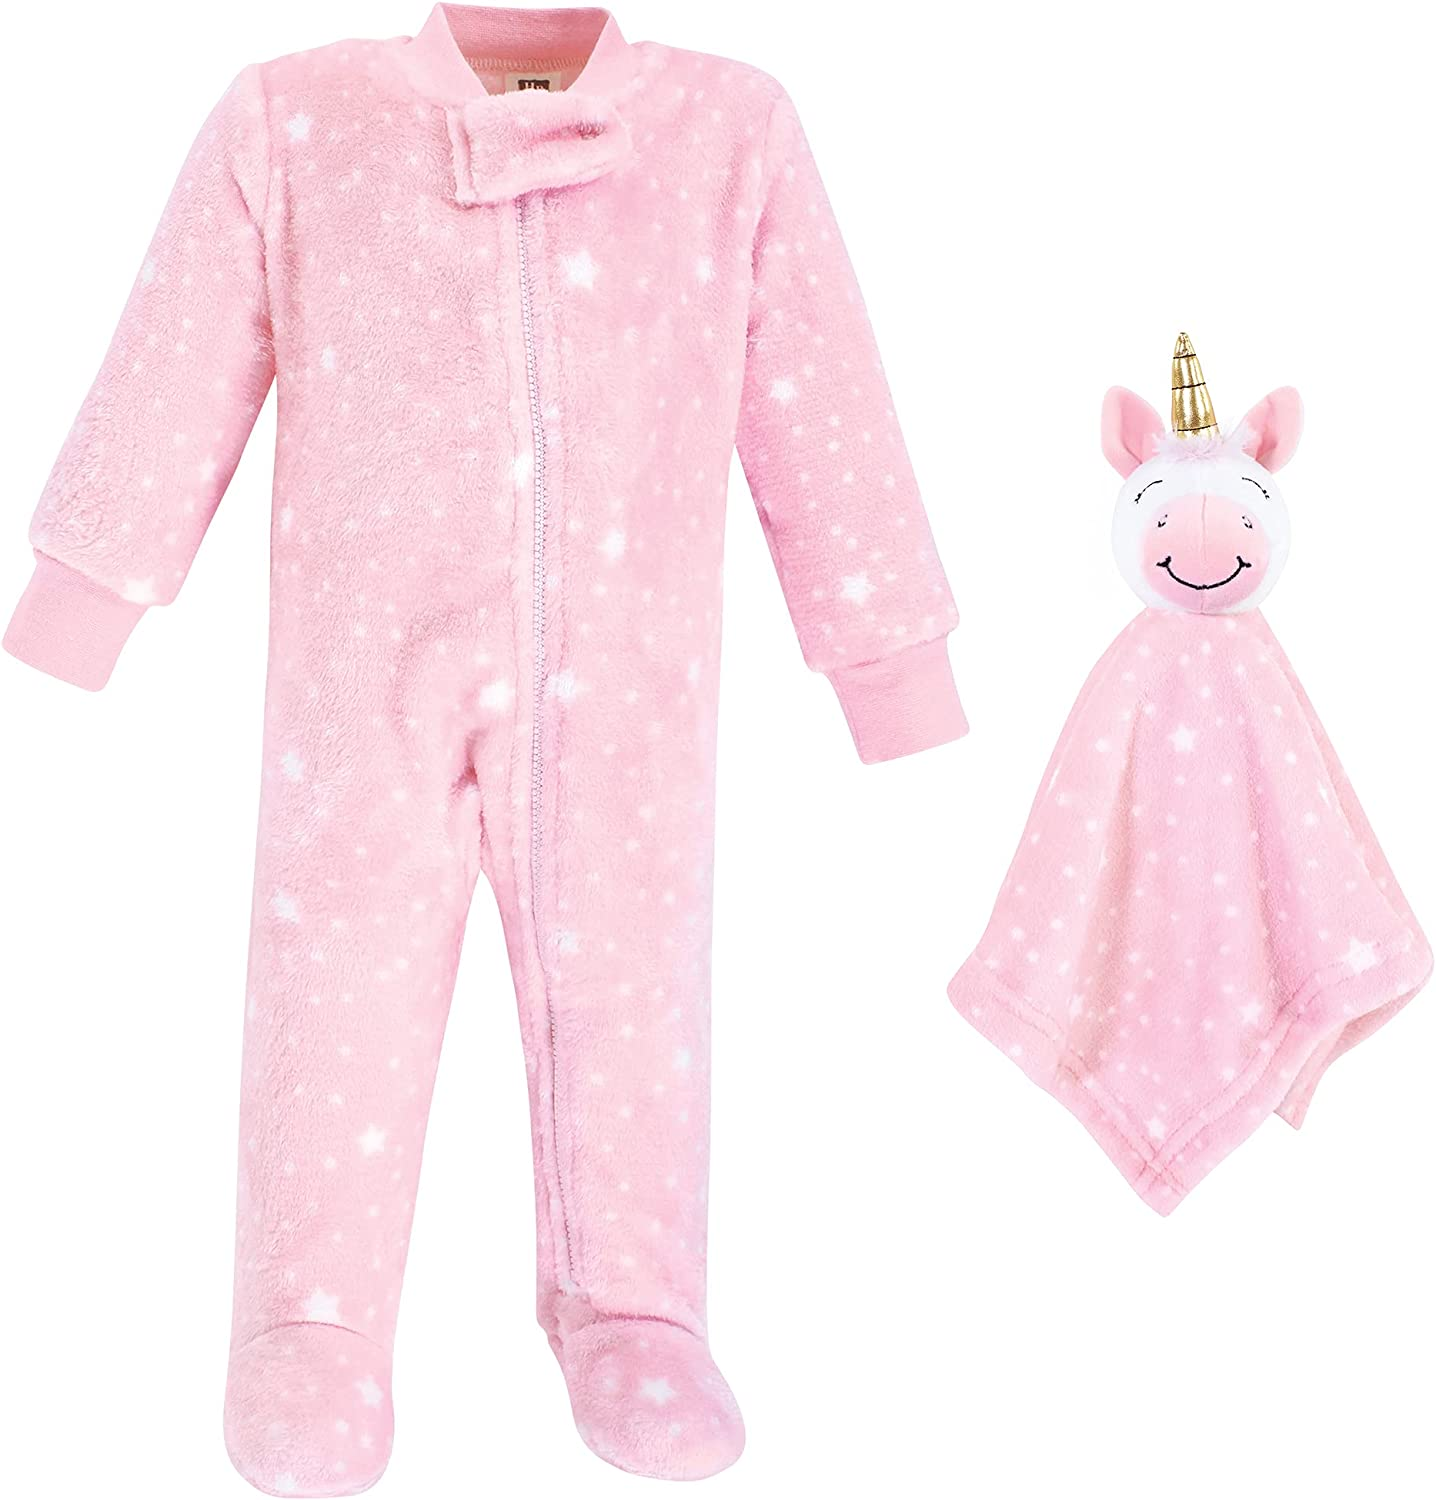 Hudson Baby Unisex Baby Flannel Plush Sleep and Play and Security Toy, Pink Unicorn, 6-9 Months